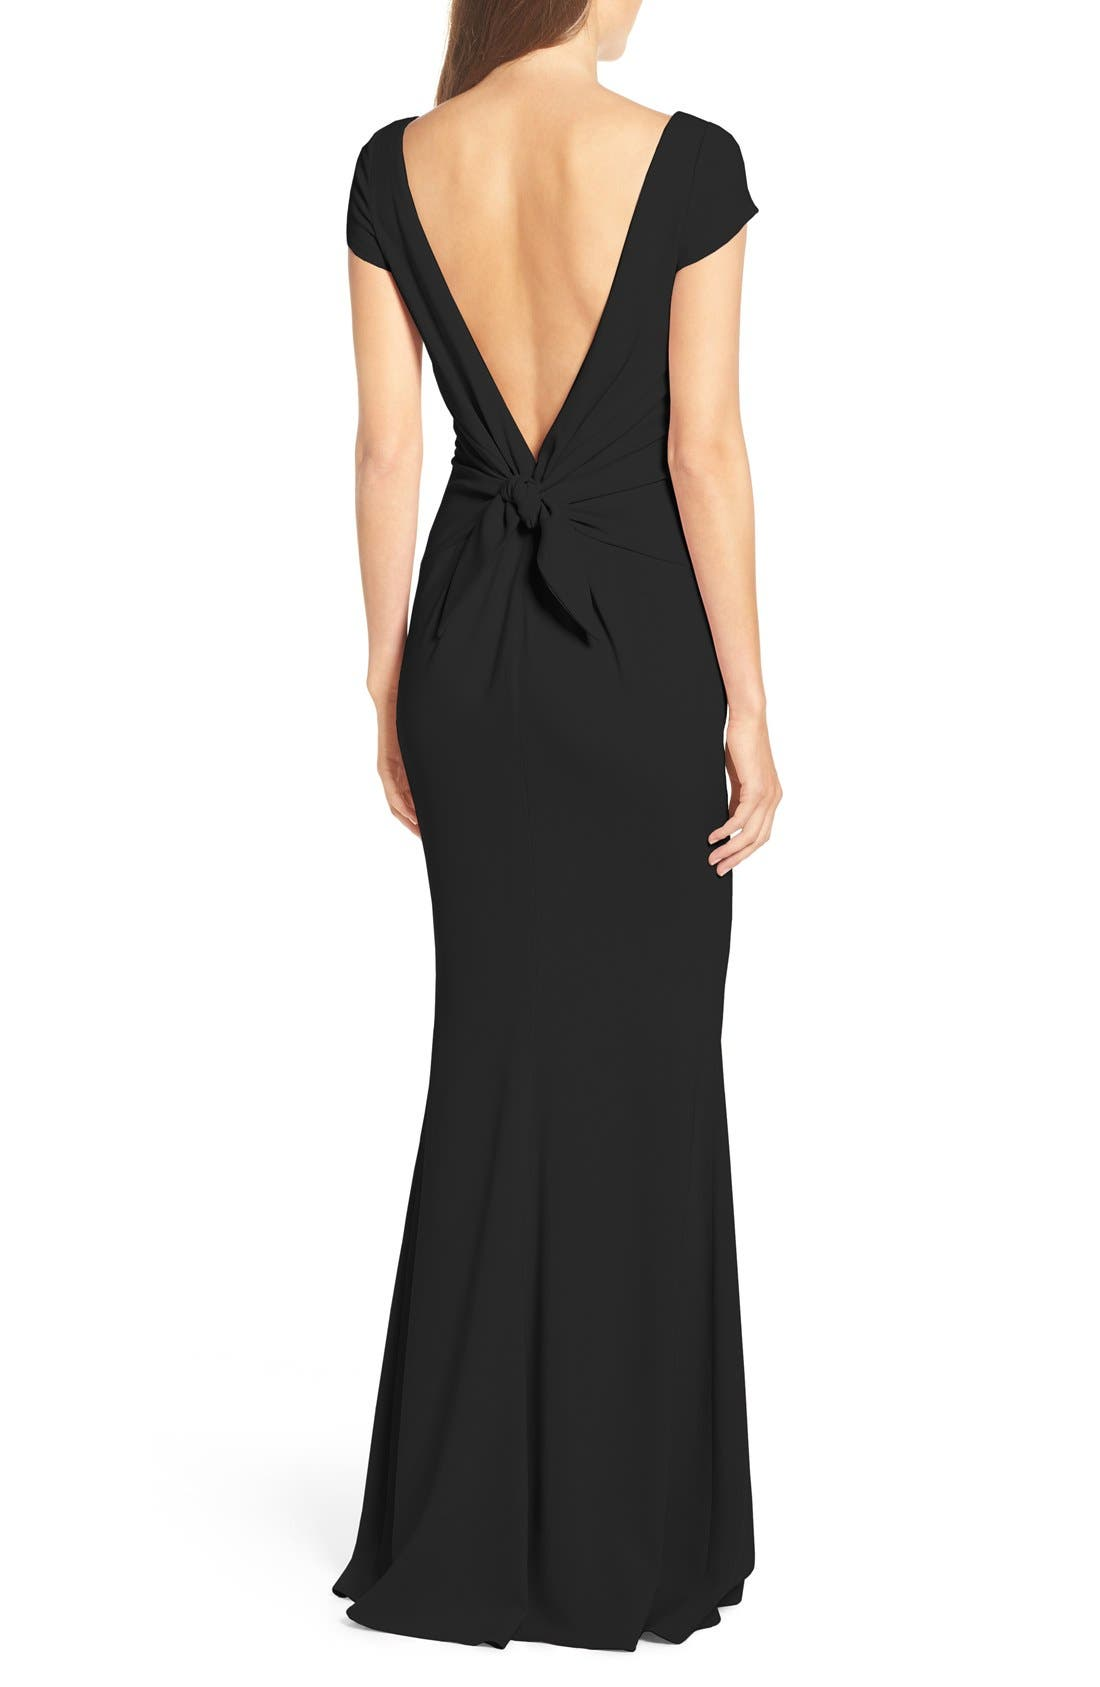 Intrigue Plunge Knot Back Gown,                             Alternate thumbnail 8, color,                             BLACK